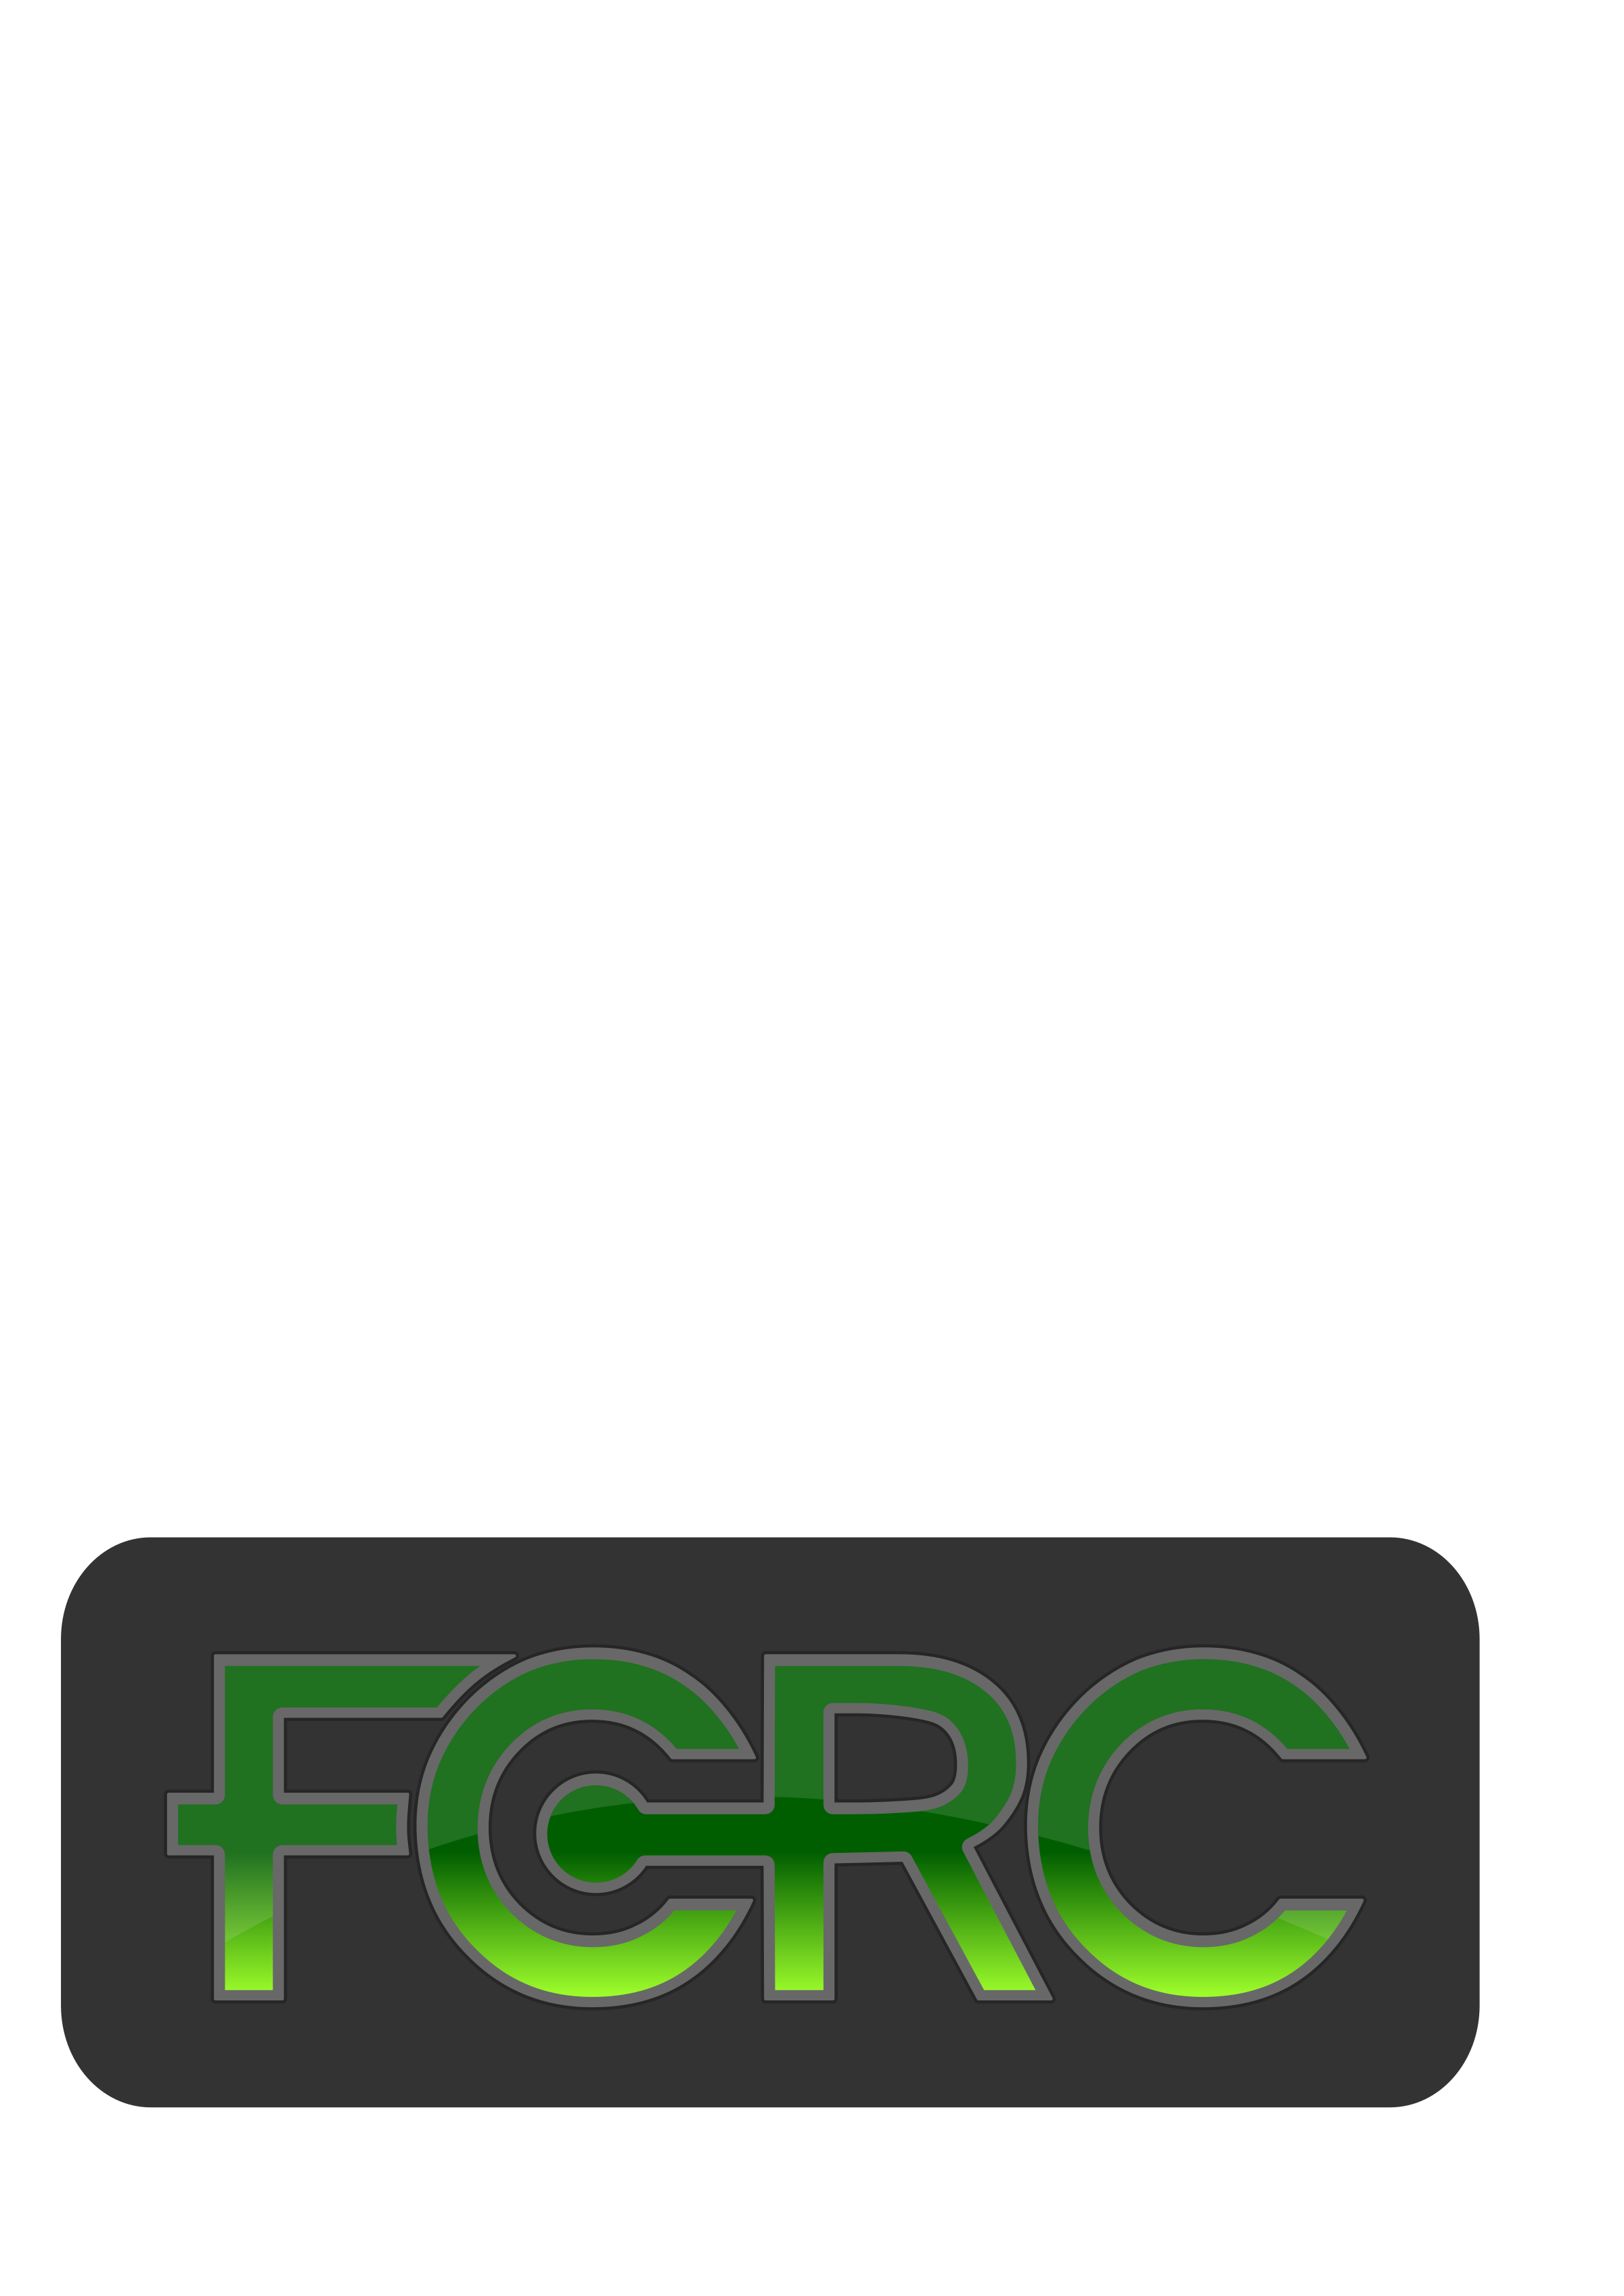 FCRC logo text 3 by timeth